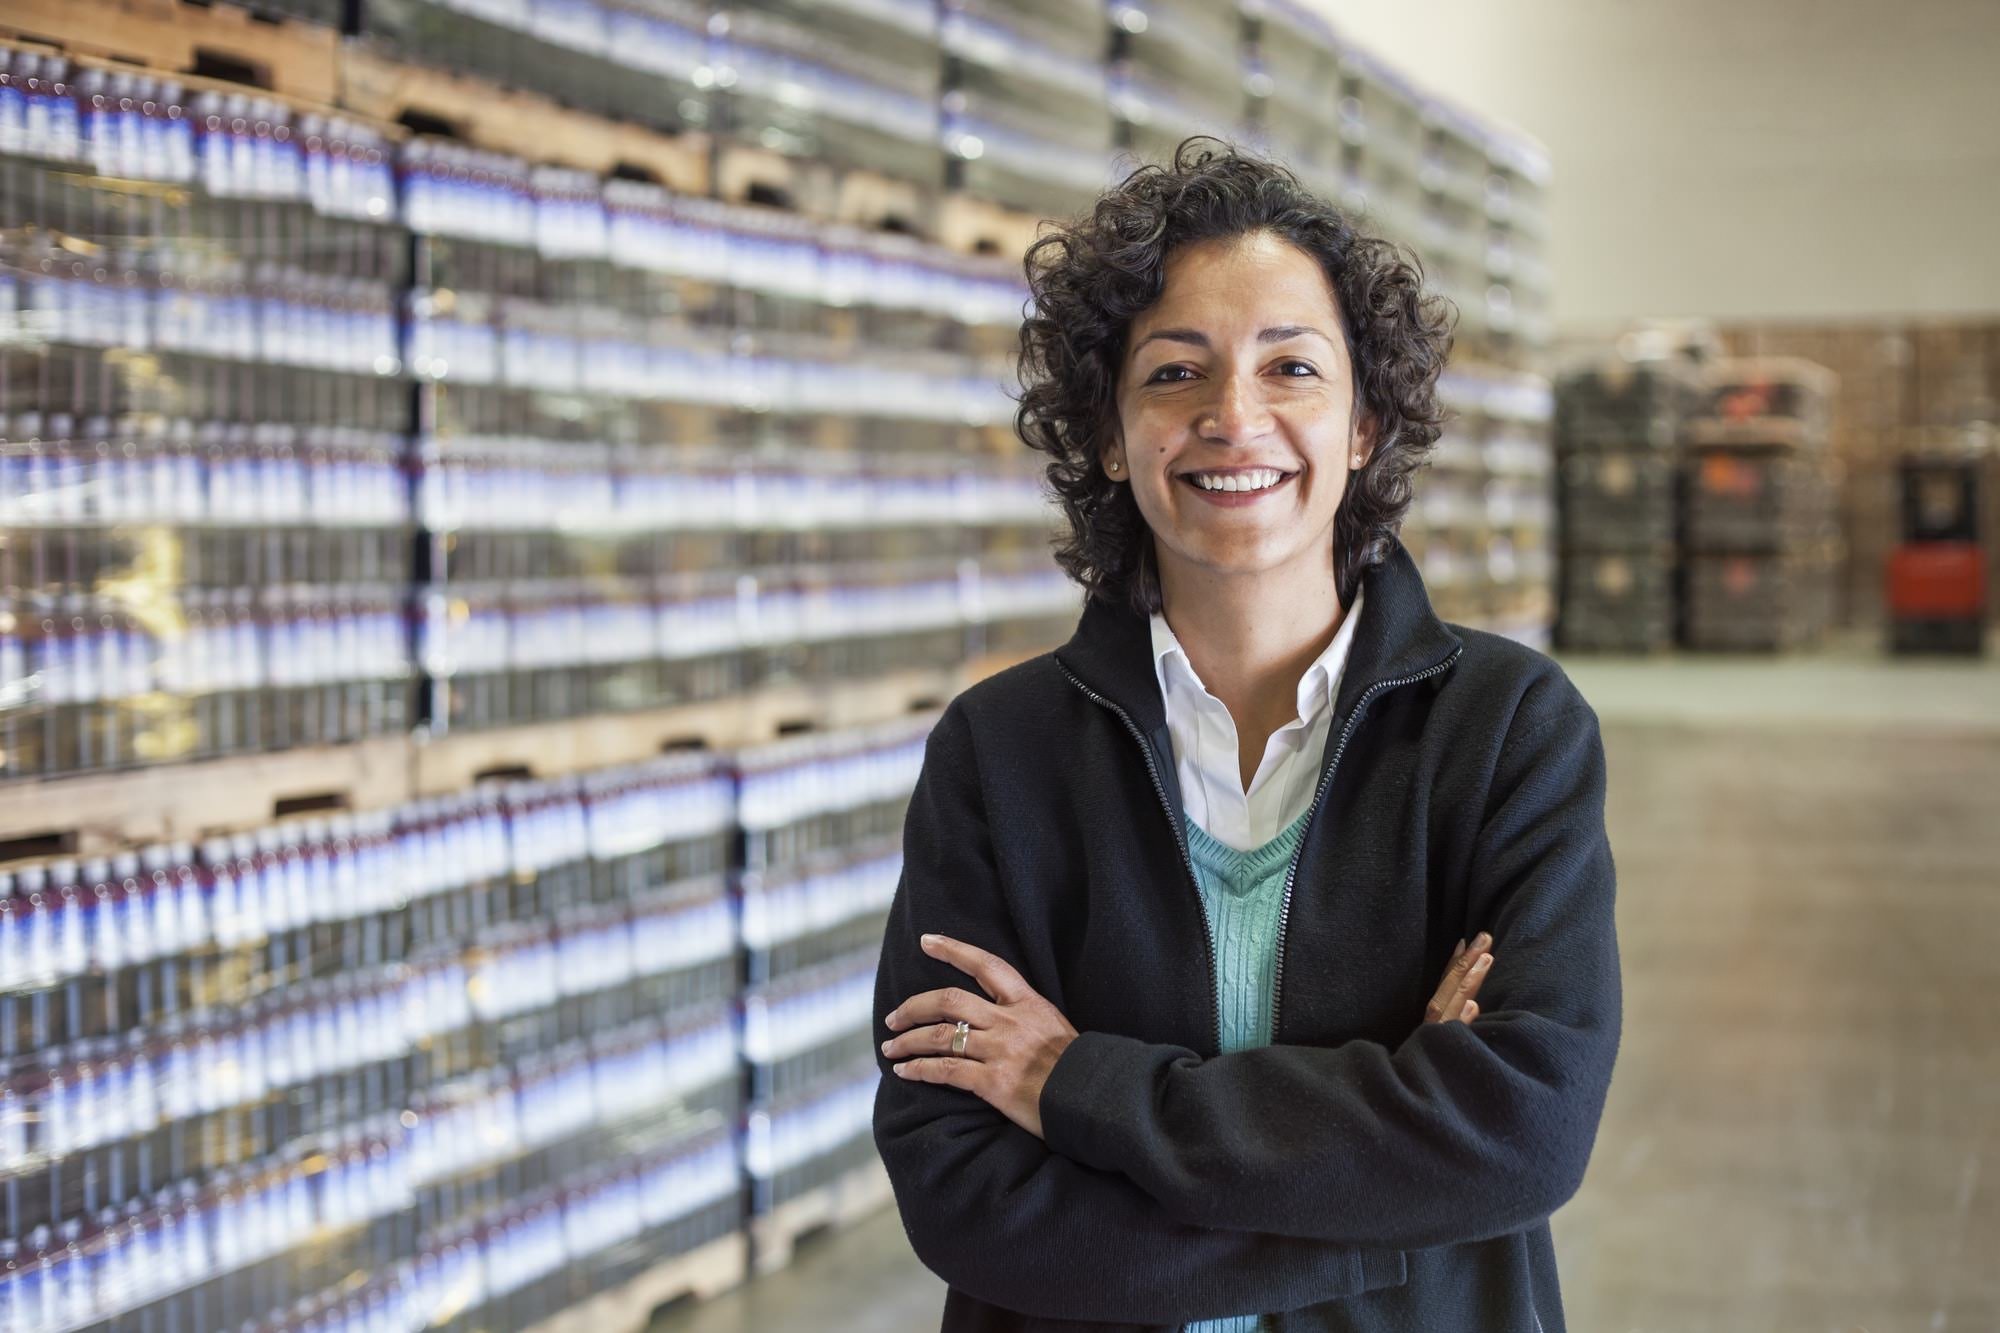 Portrait of an African American female manager in a storage warehouse of pallets